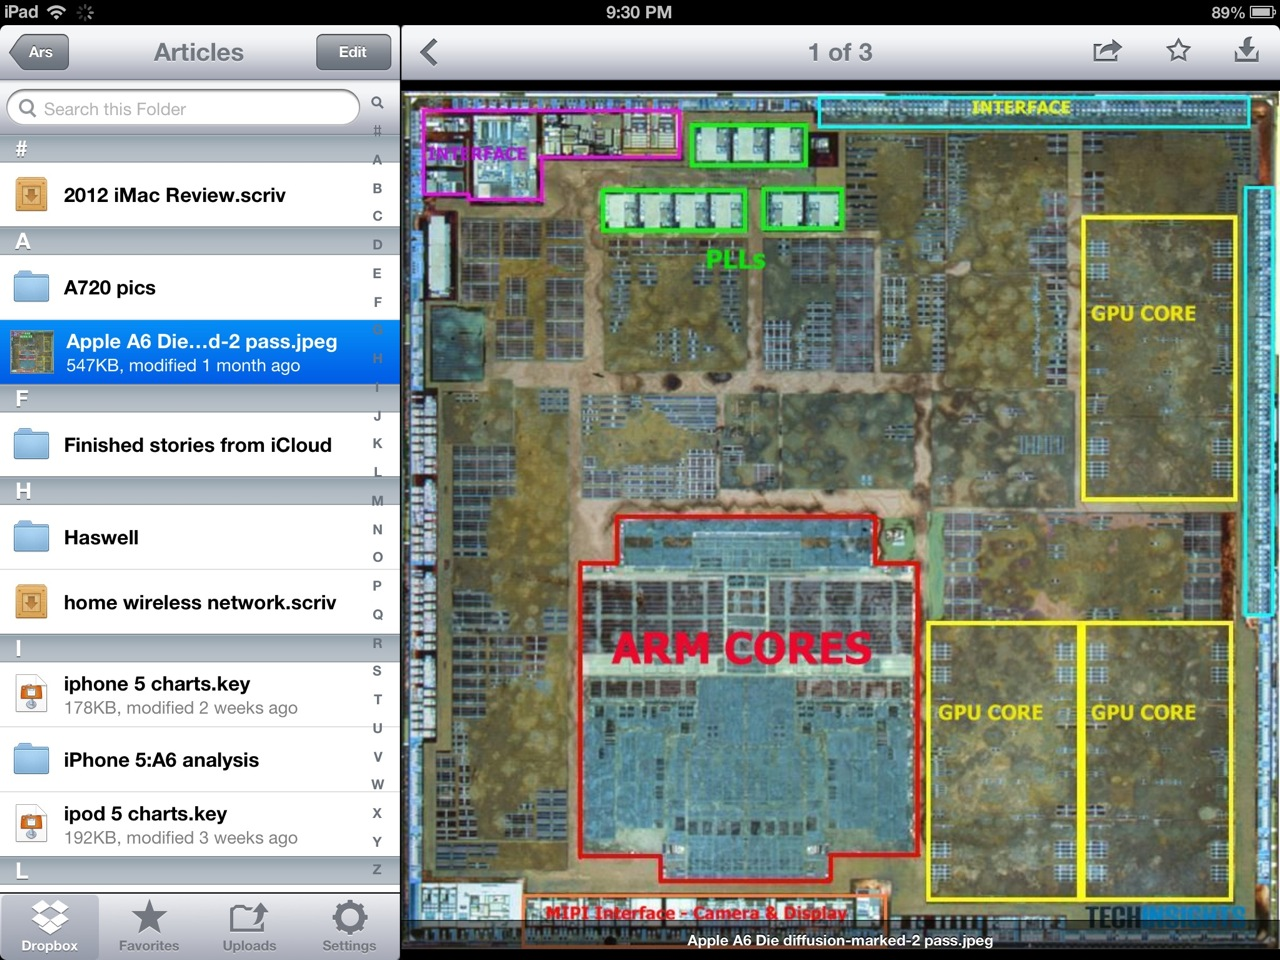 Dropbox for iOS uses multiple, independent panes to make better use of real estate.